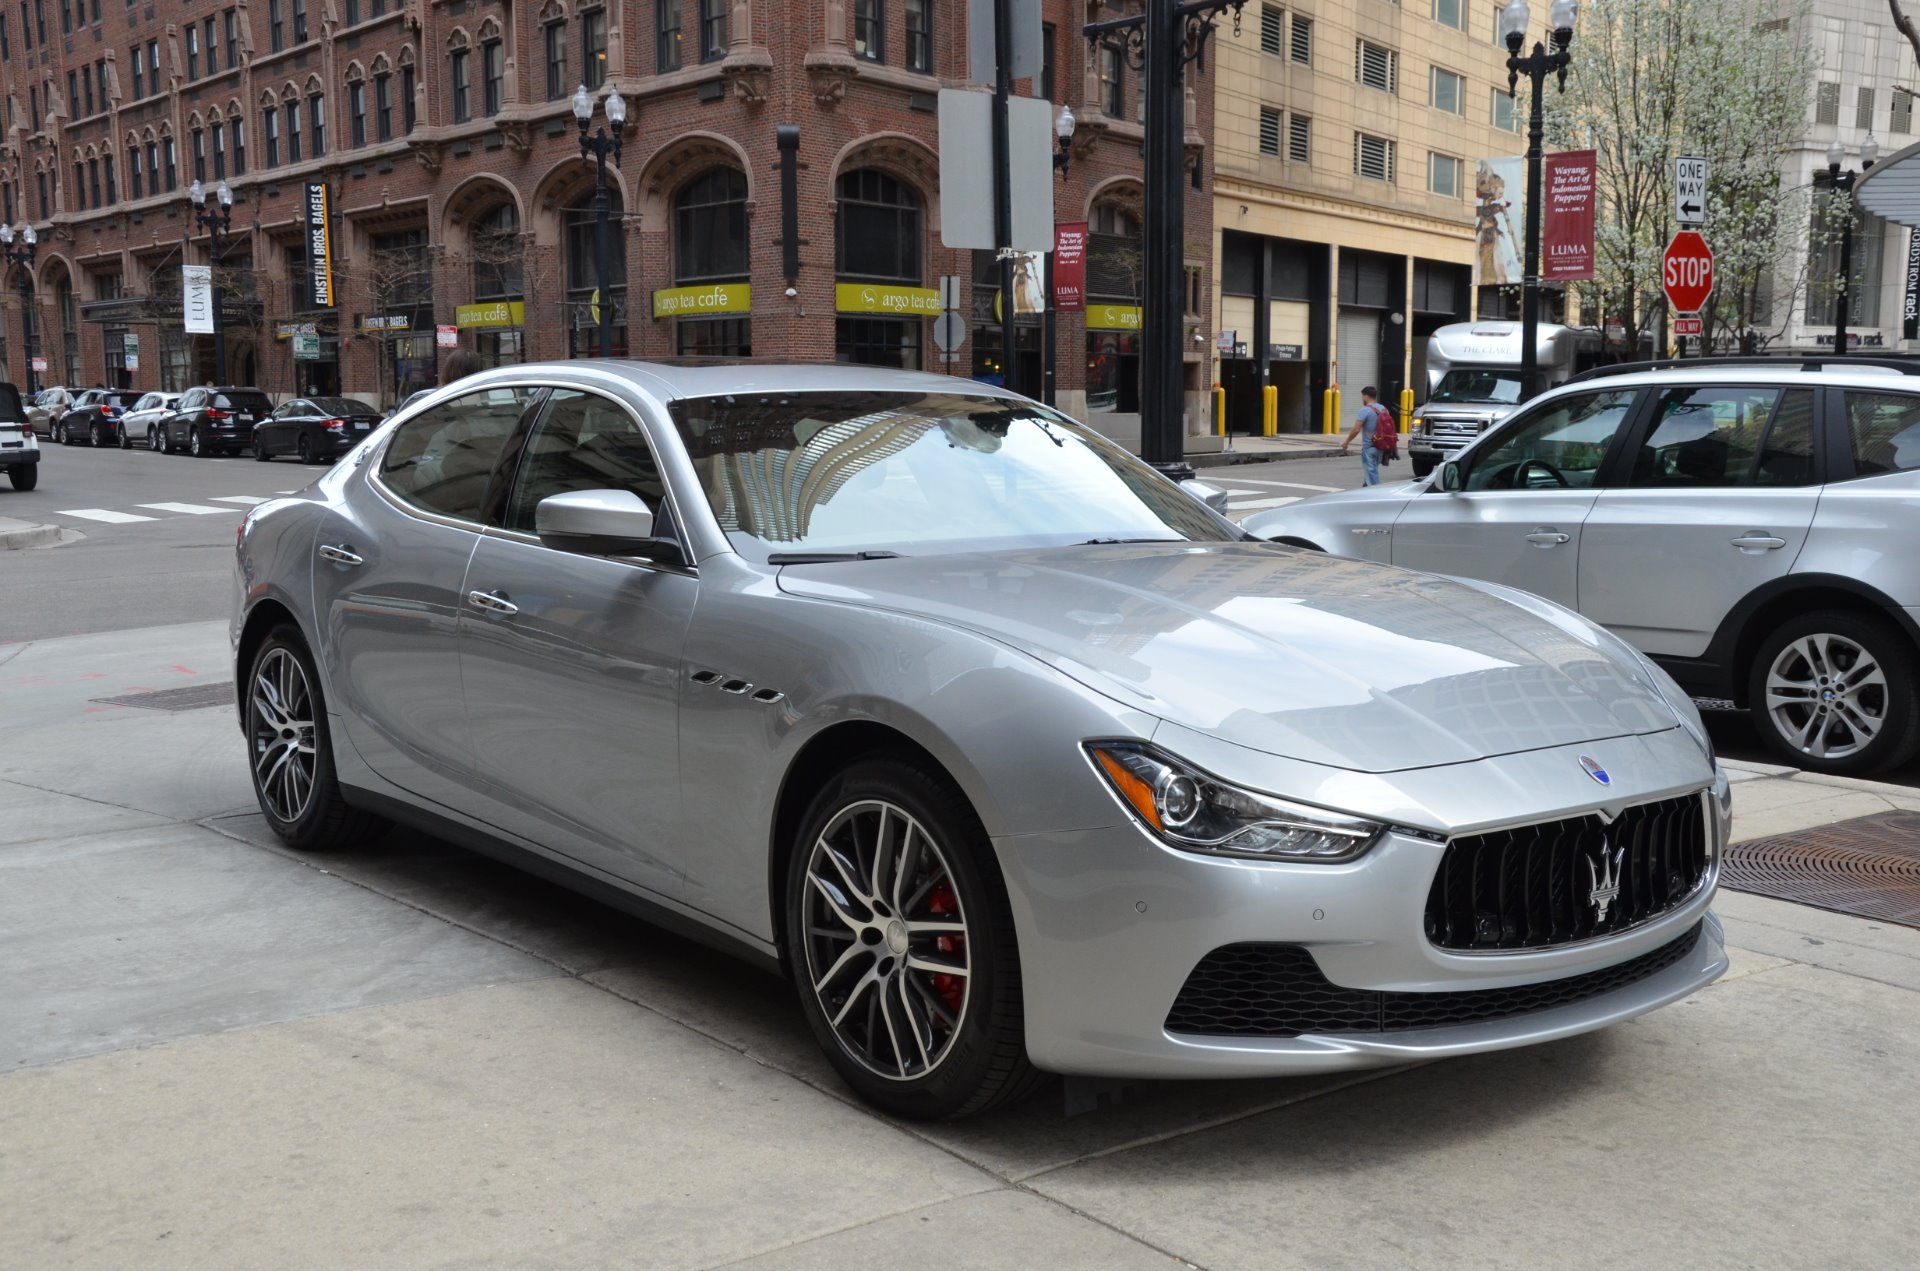 2017 maserati ghibli sq4 s q4 stock m597 for sale near chicago il il maserati dealer. Black Bedroom Furniture Sets. Home Design Ideas